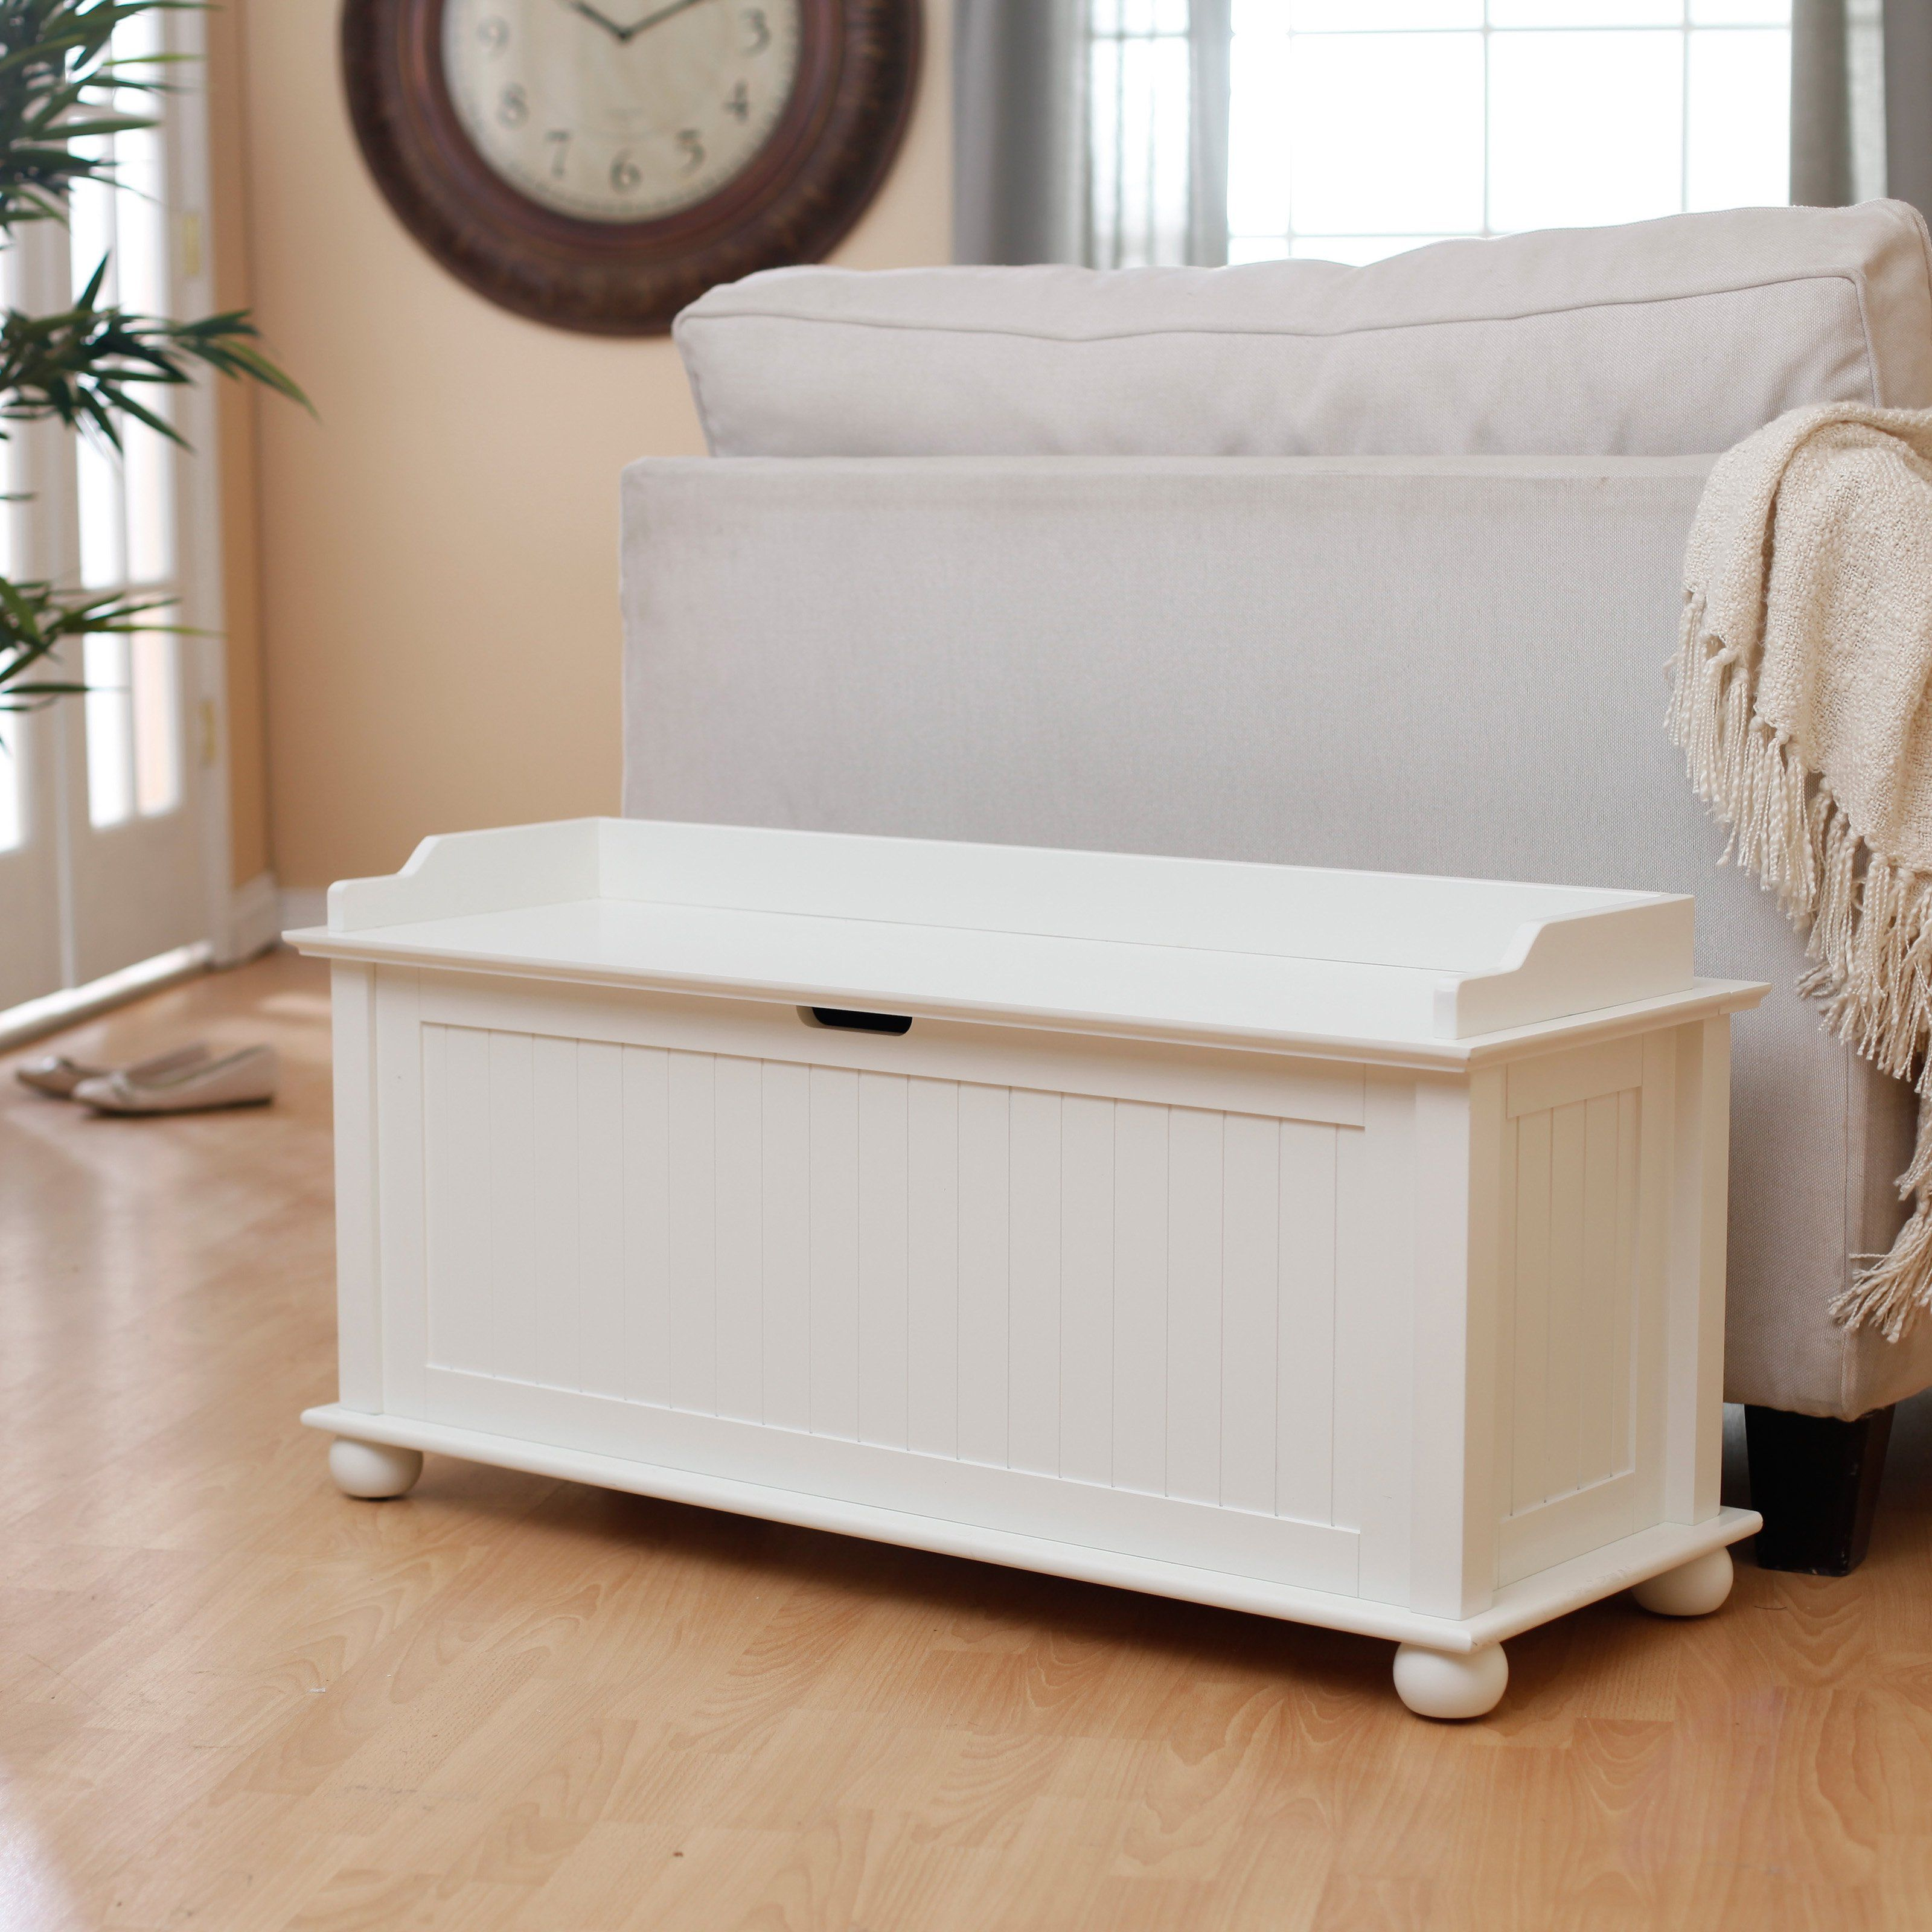 Elegant Skinny Upholstered Bench Skinny Benches Long Benches Indoor ...